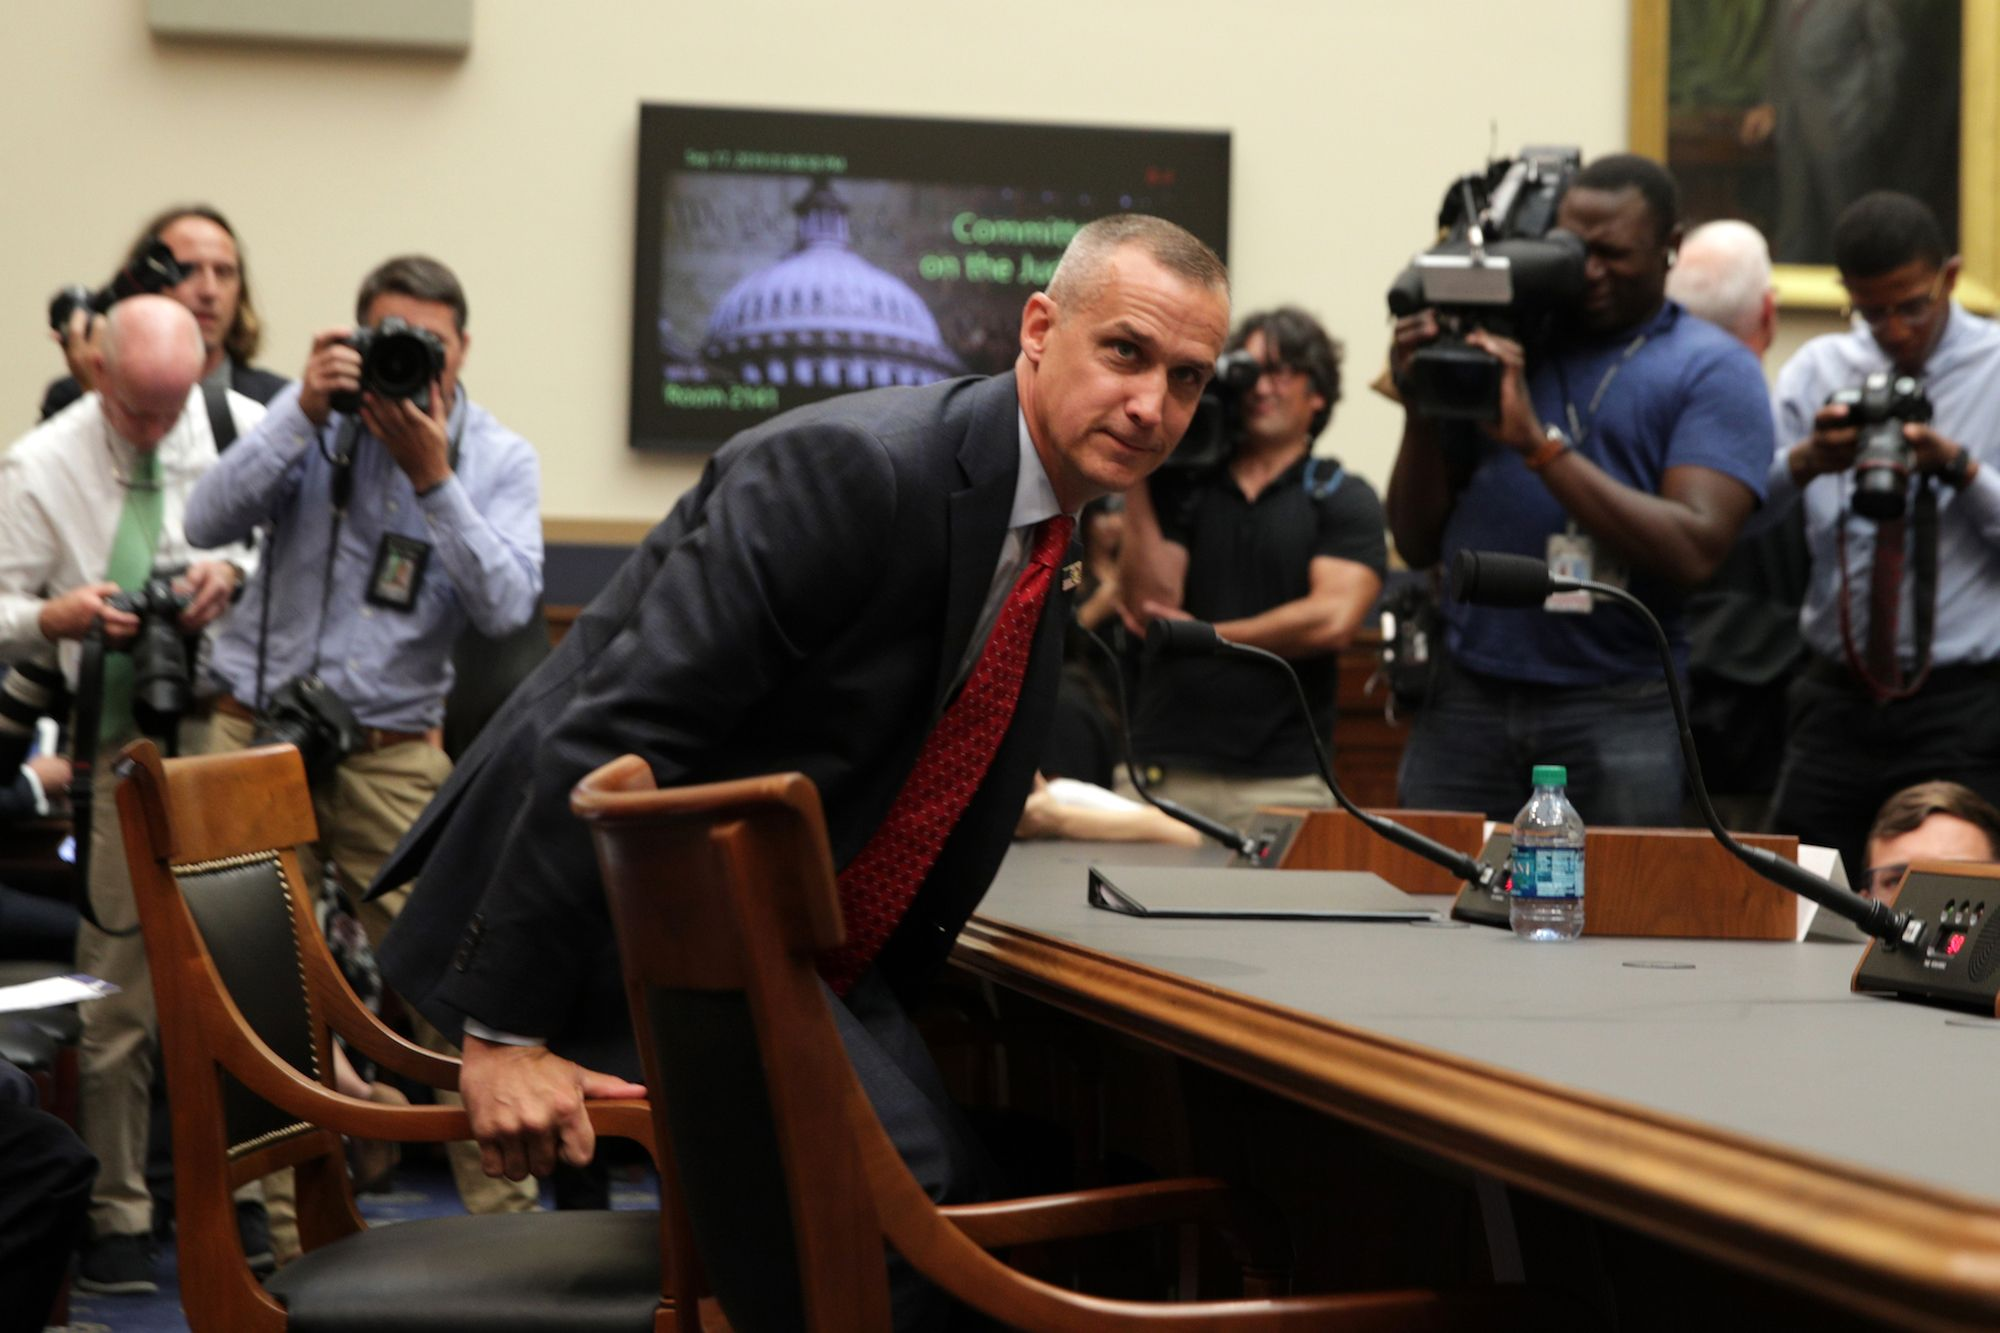 Corey Lewandowski Just Proved Democrats Have Not Come to Grips With What They're Up Against